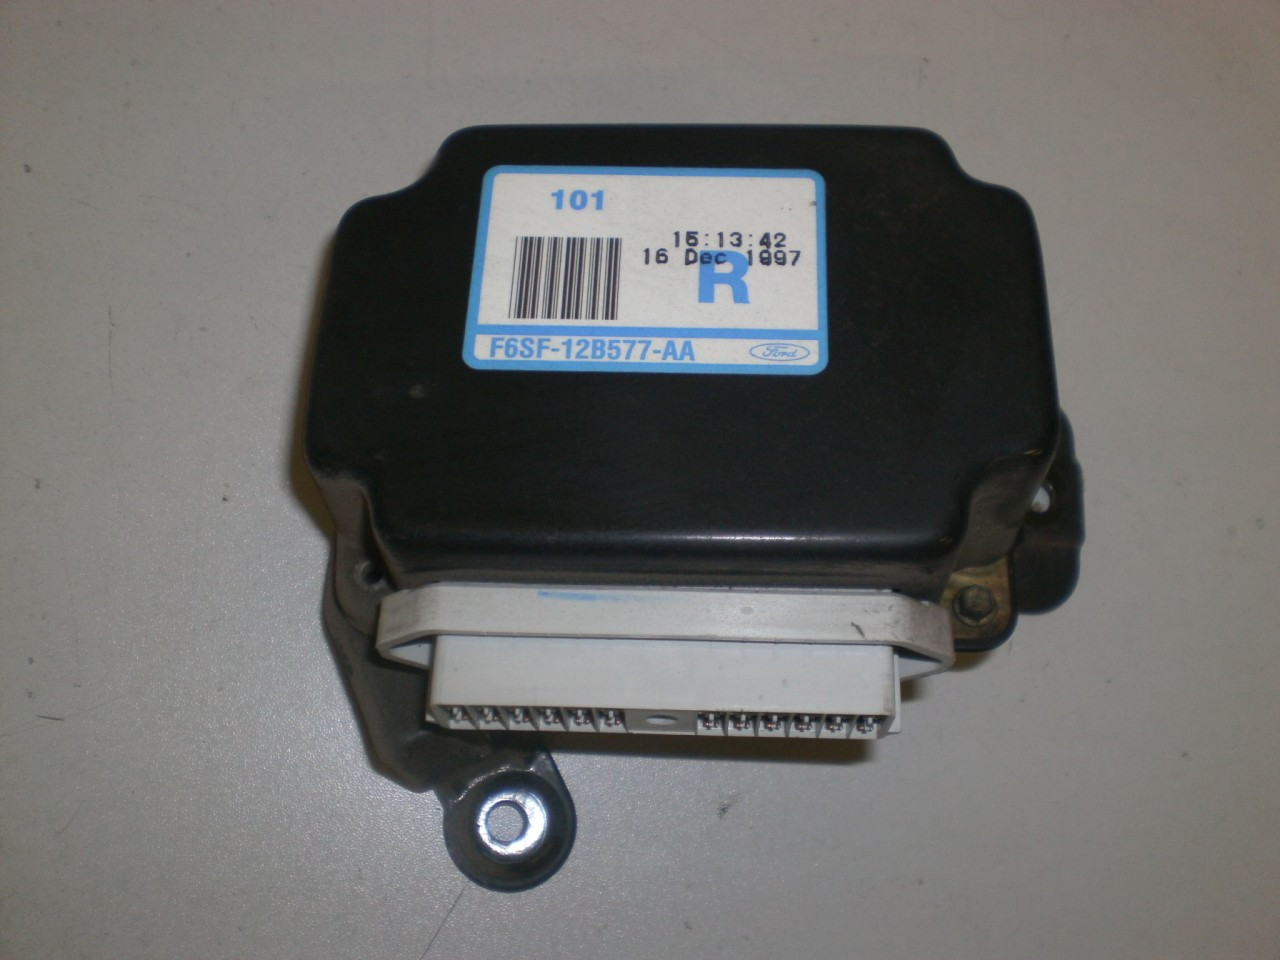 1996 1998 ford mustang fuel fan a c control module relay box gt lx cobra 4 6 3 8 [ 1280 x 960 Pixel ]